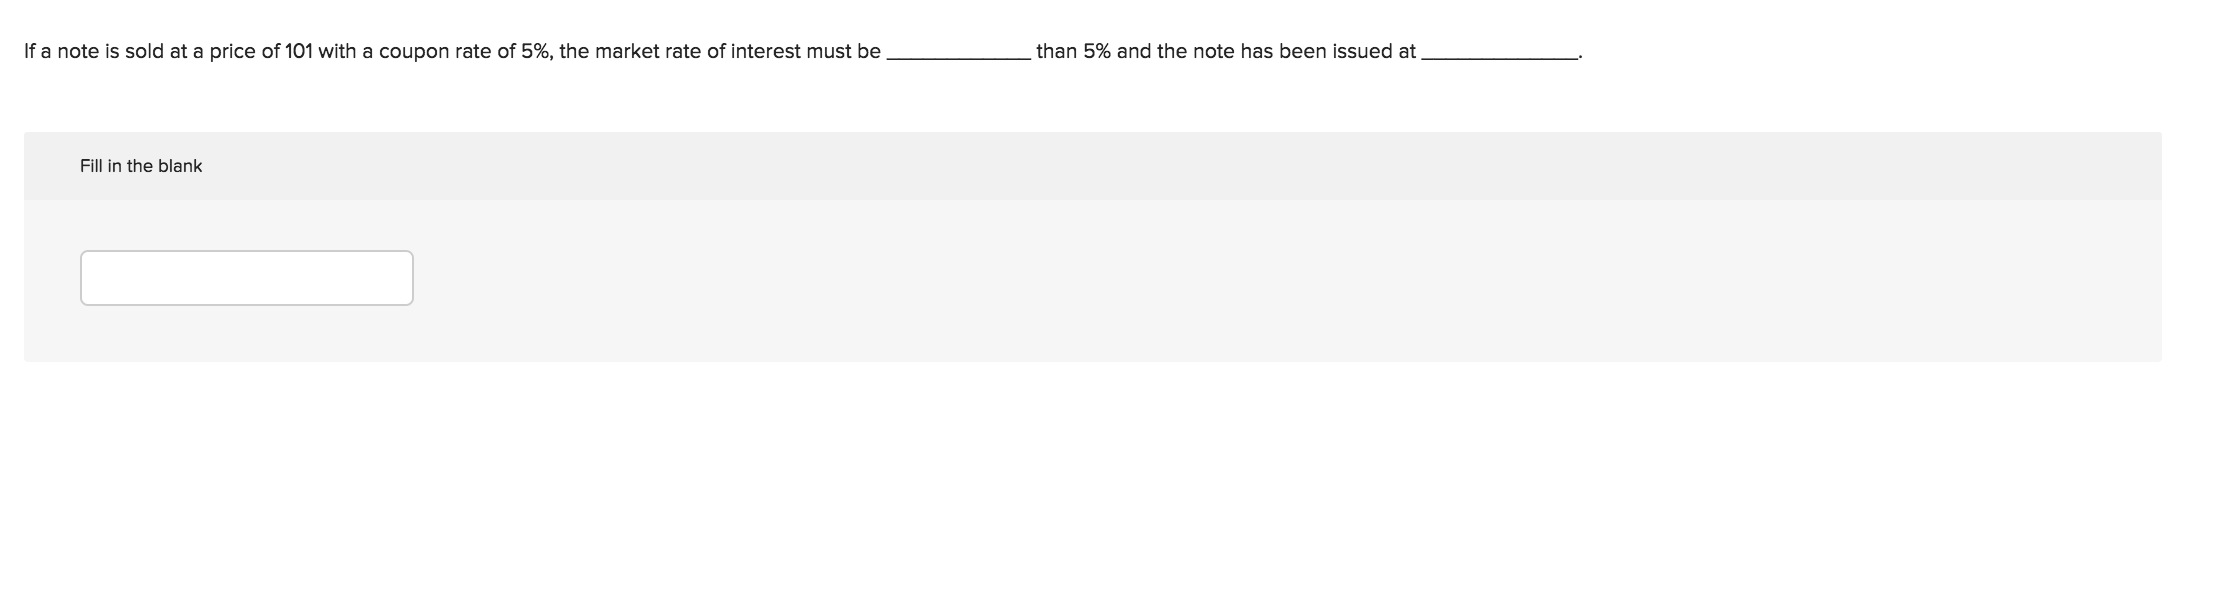 If a note is sold at a price of 101 with a coupon rate of 5%, the market rate of interest must be than 5% and the note has been issued at Fill in the blank